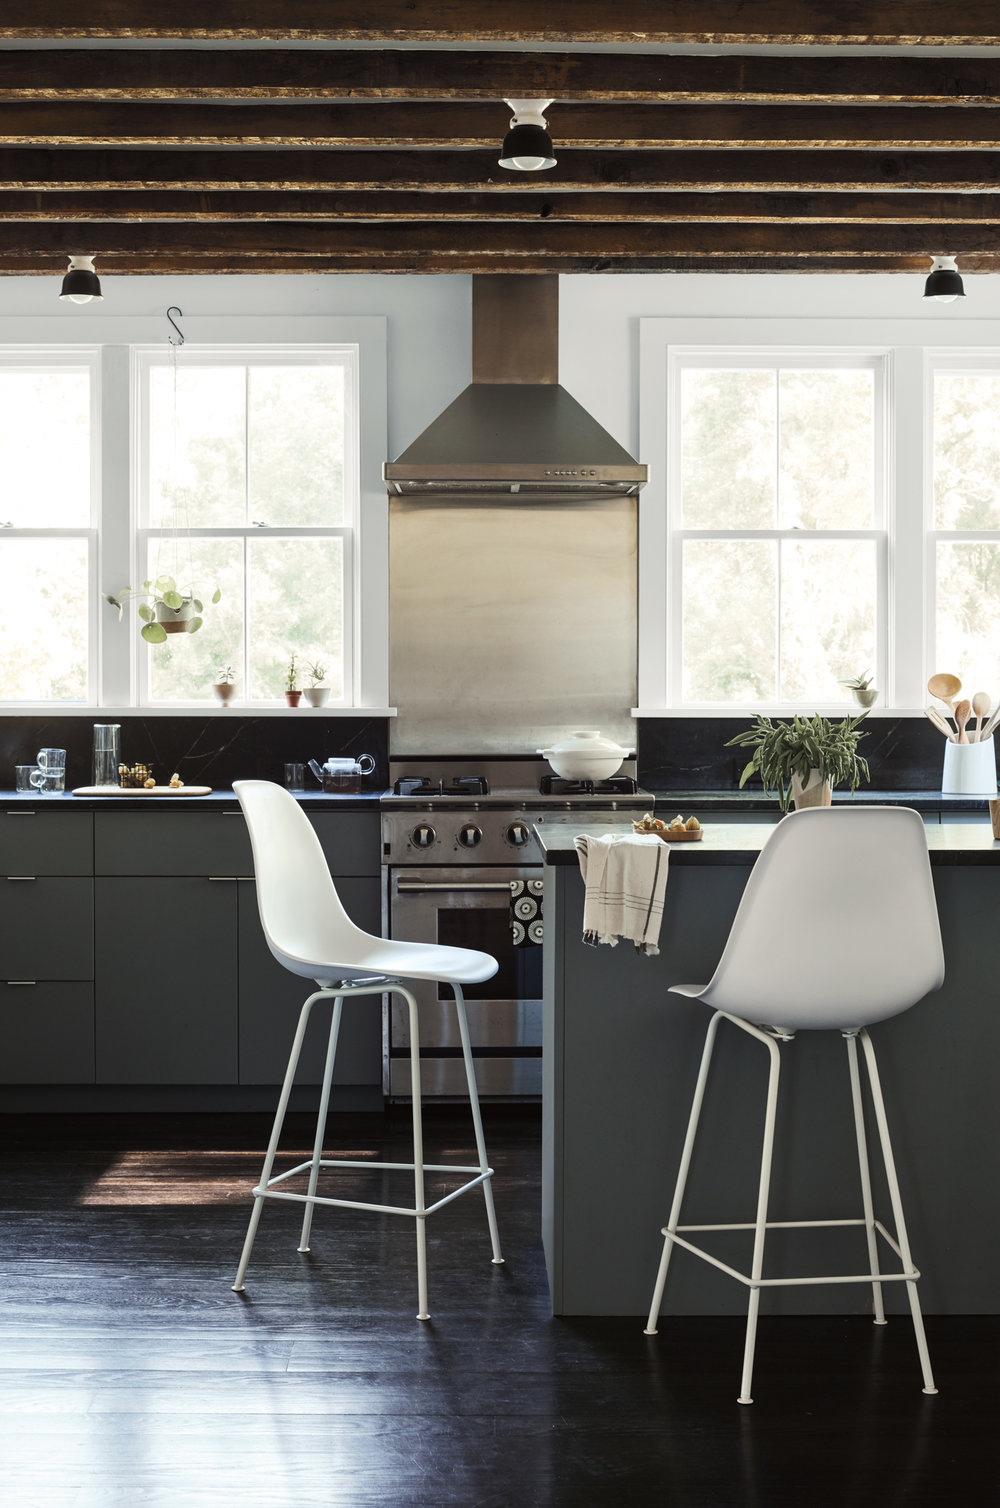 HM_Rhinebeck_05_Kitchen_Eames_Stools_038_HeroWithPlant.jpg